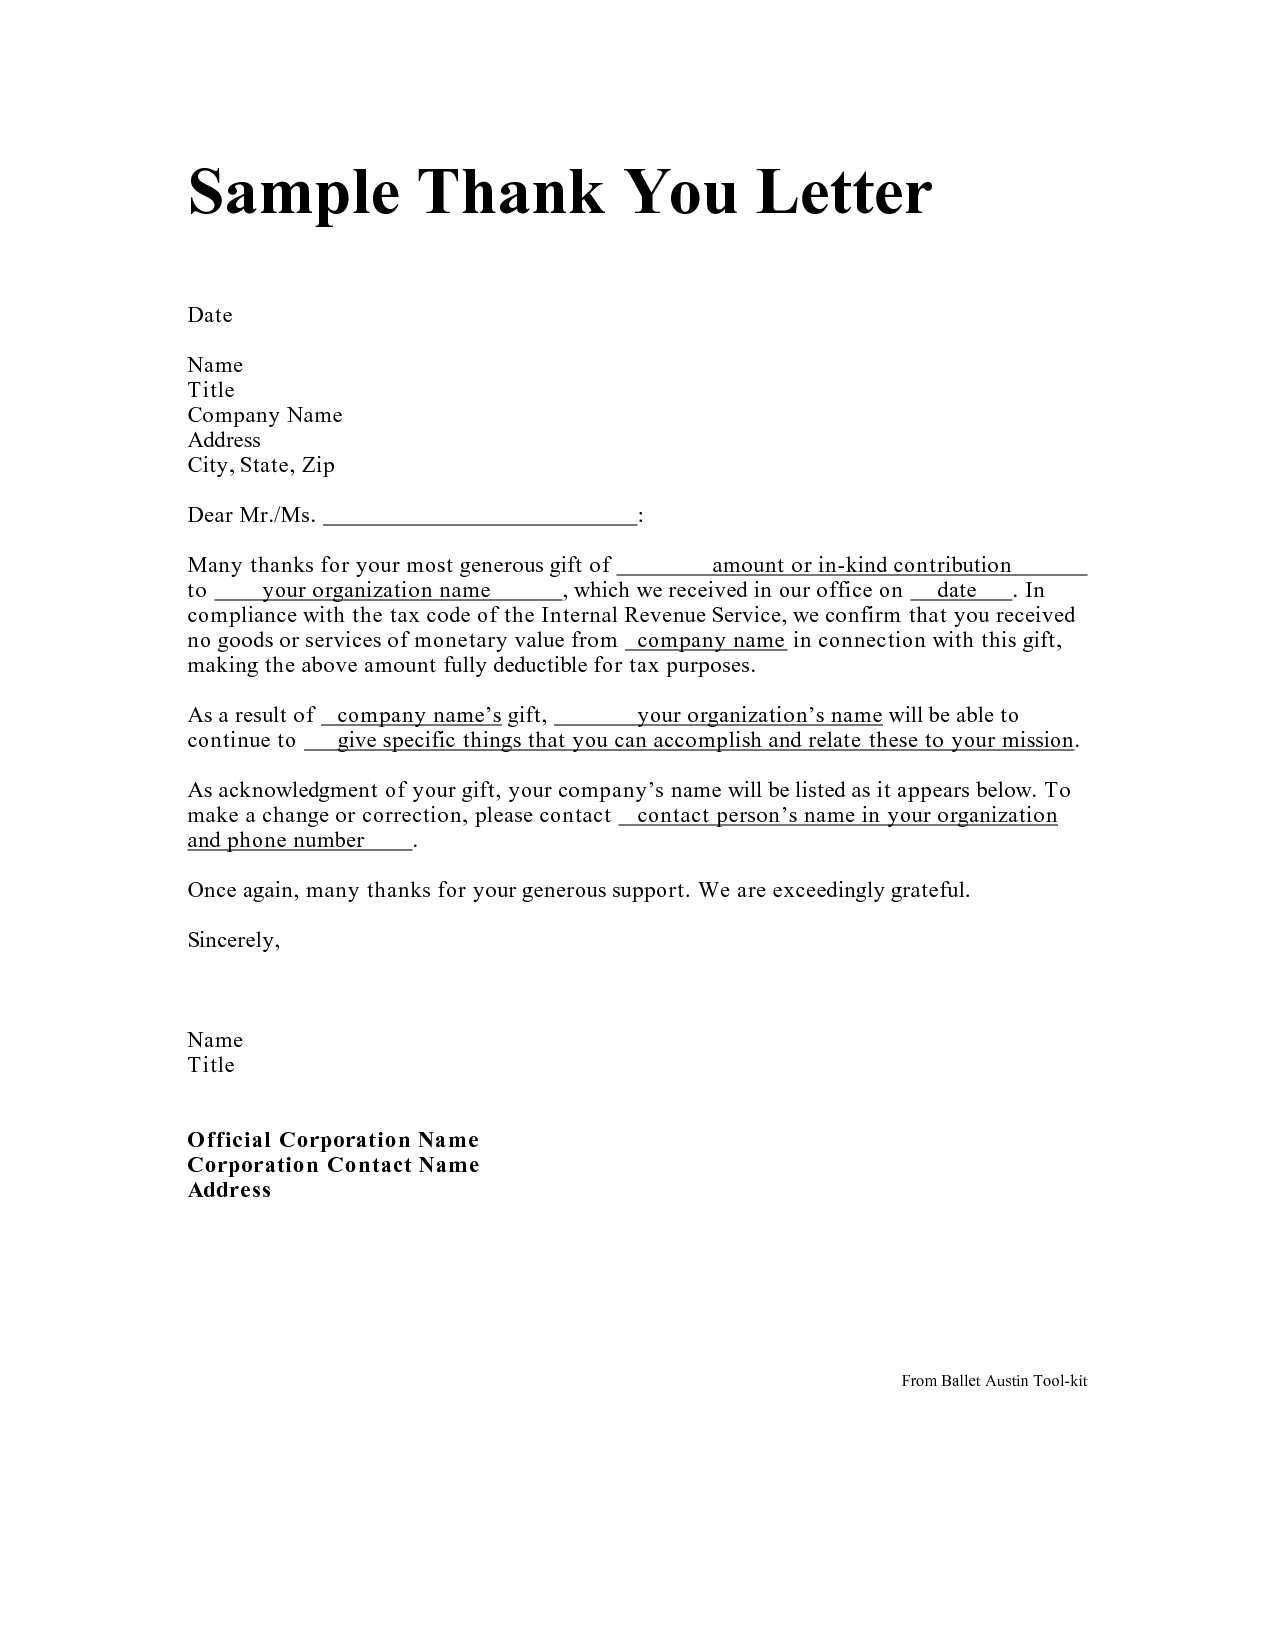 Non Profit Thank You Letter Template - Personal Thank You Letter Personal Thank You Letter Samples